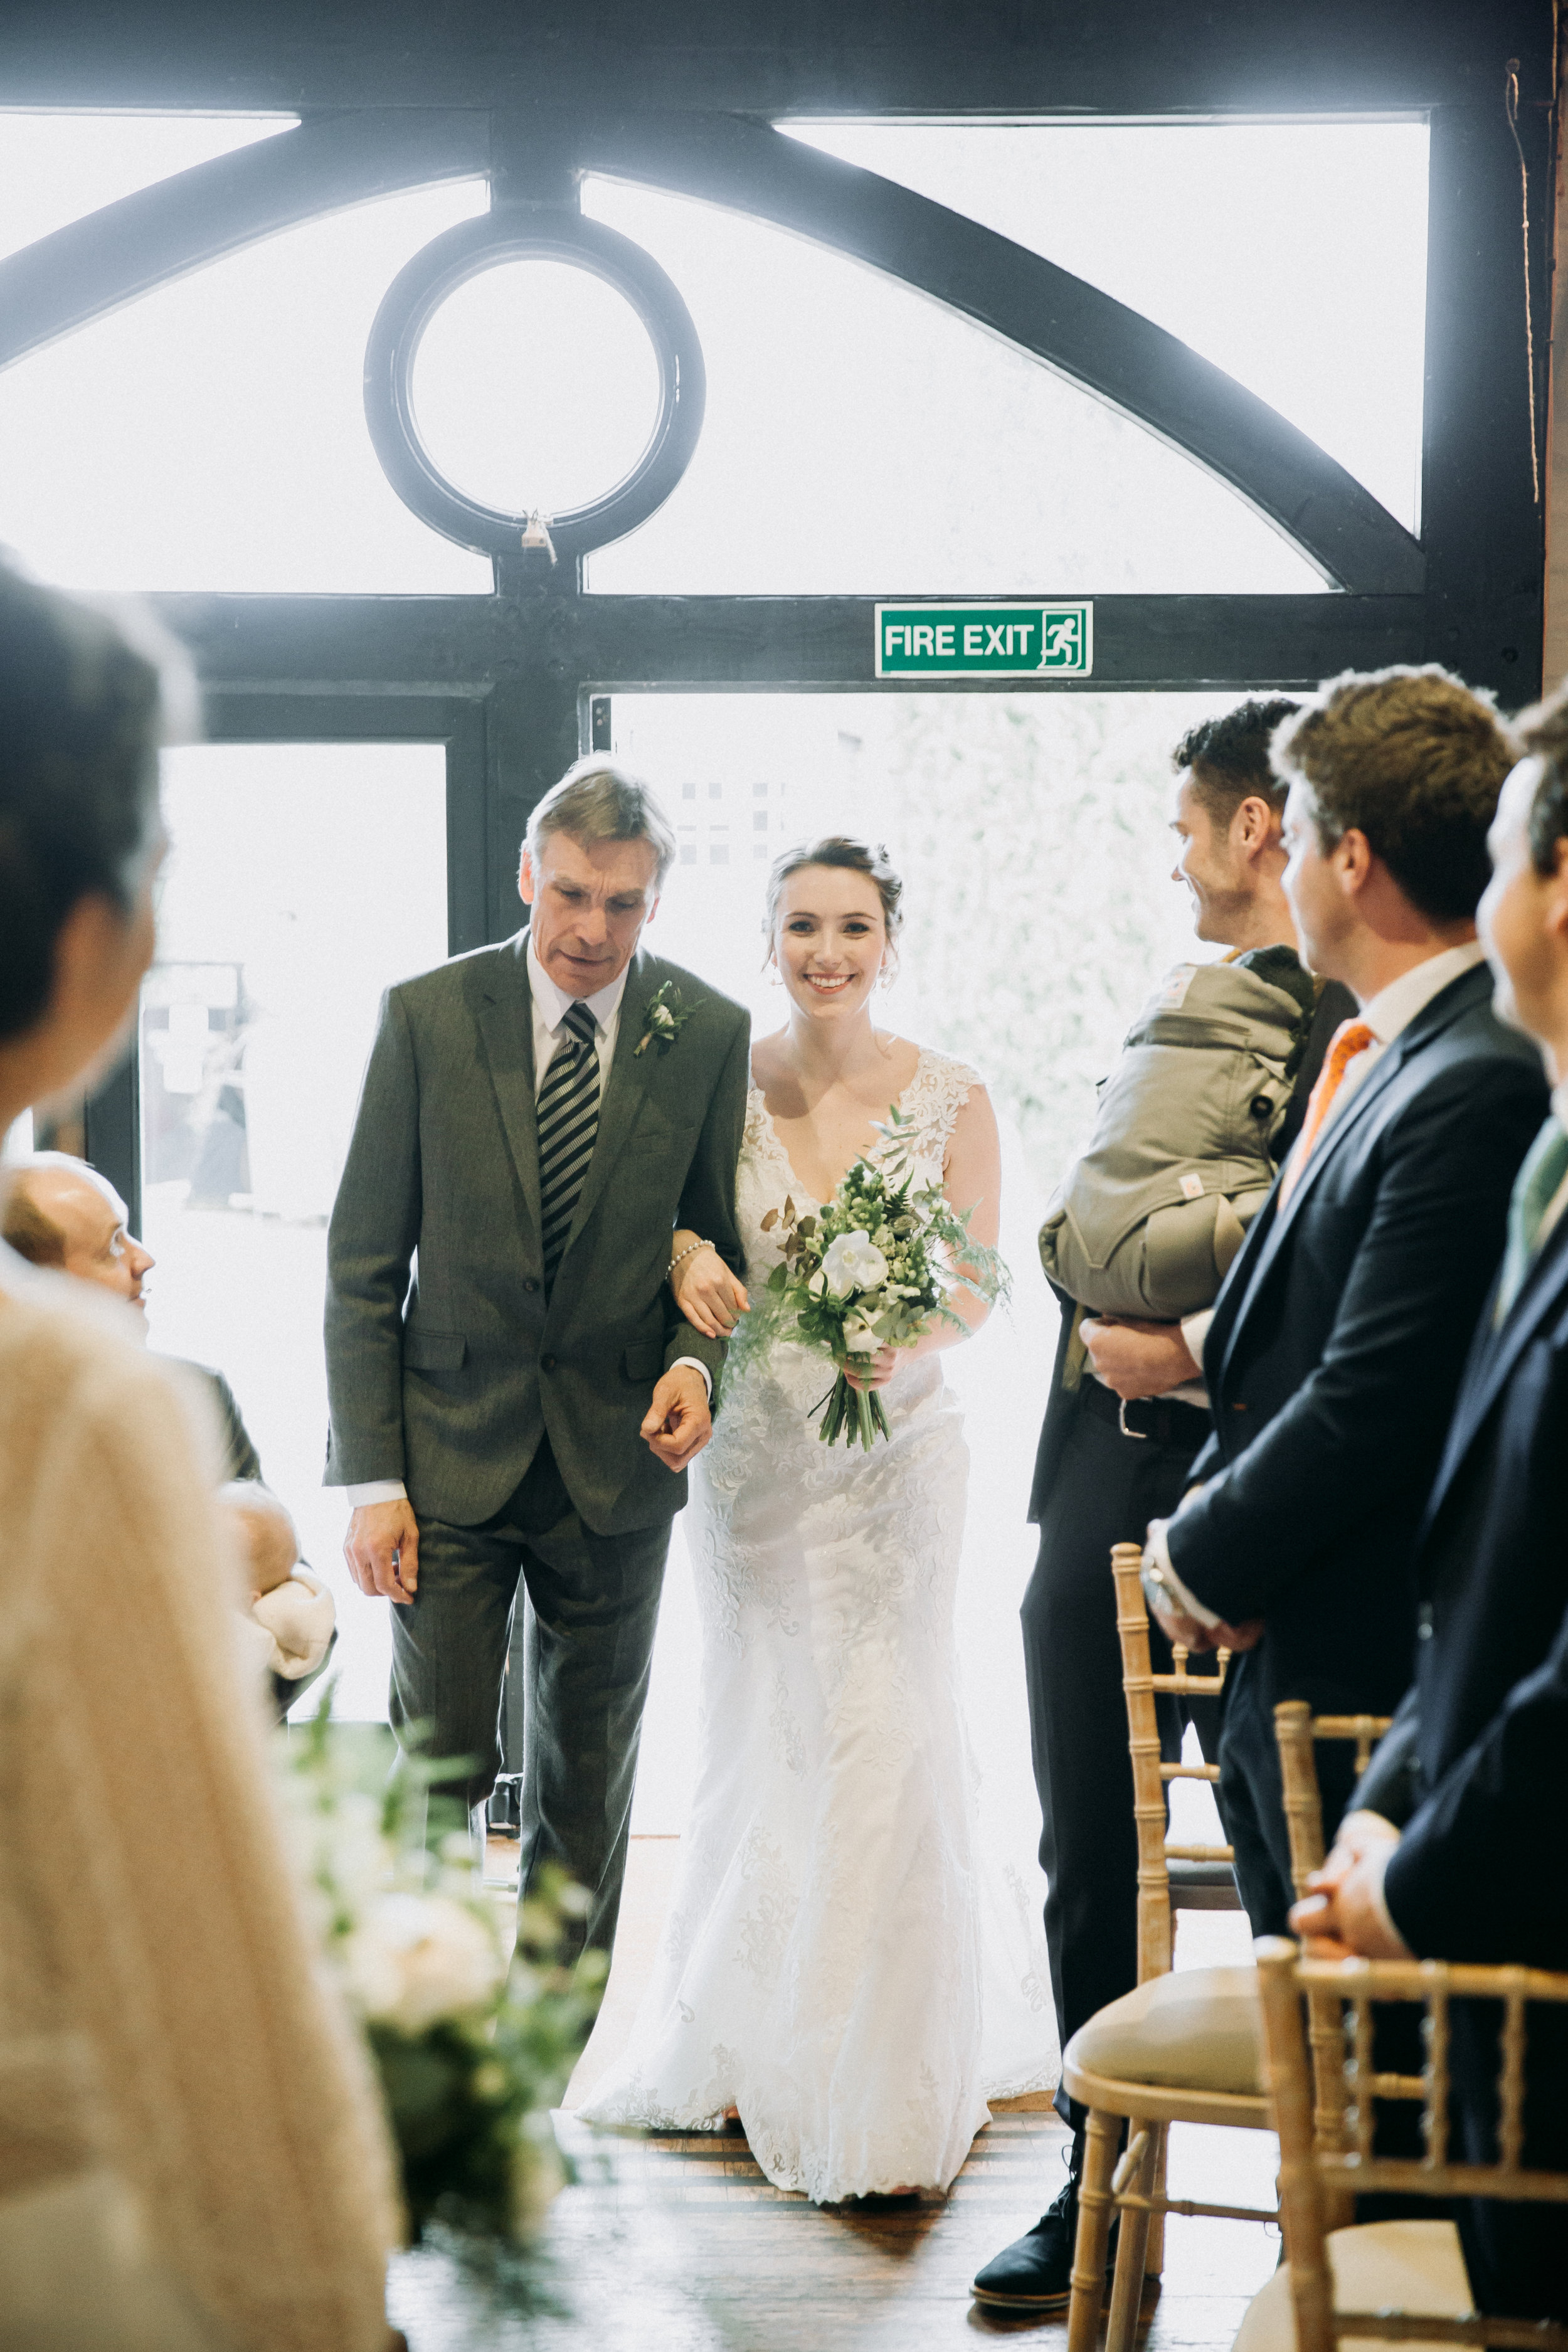 Hannah walking down the aisle at Old Luxter's Barn at The Chilterns wedding